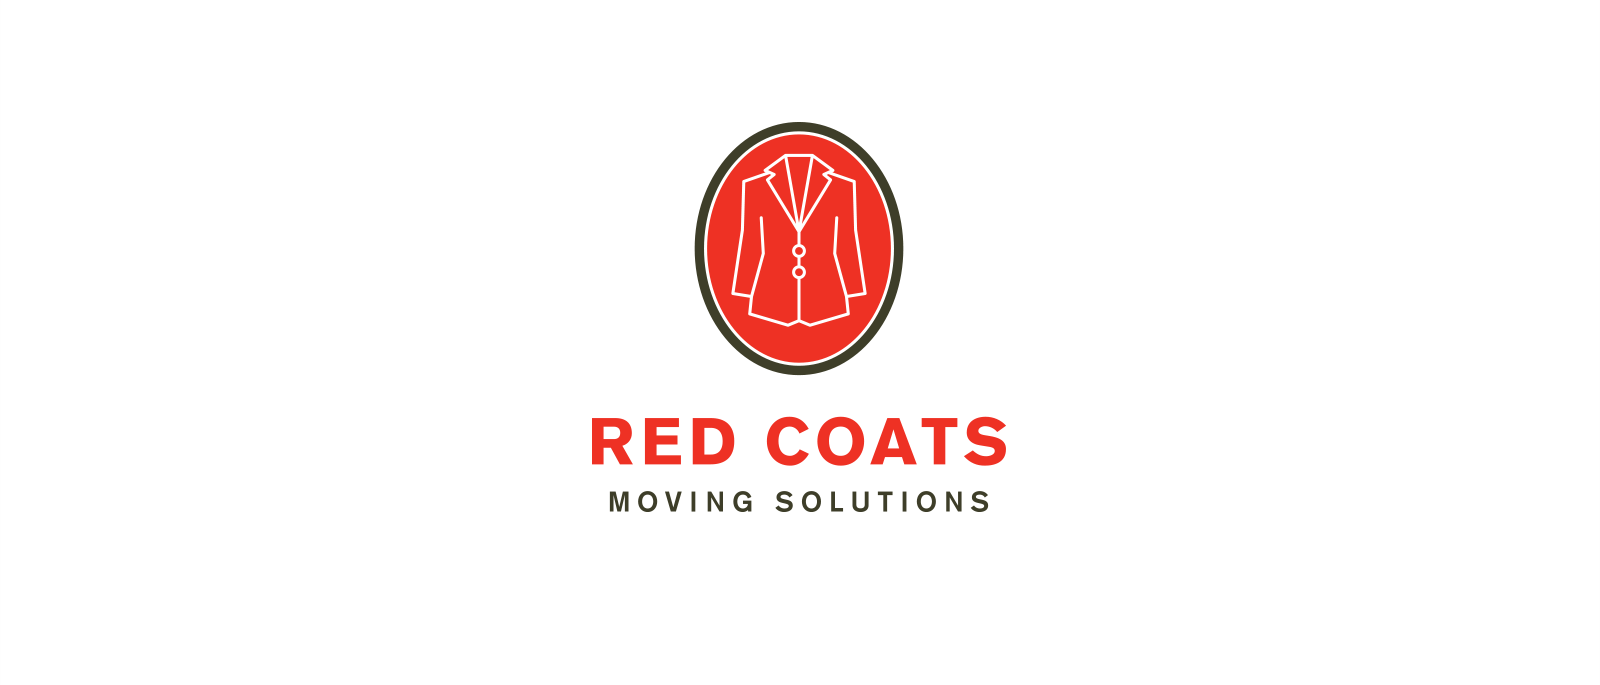 Red Coats Moving Solutions - Identity